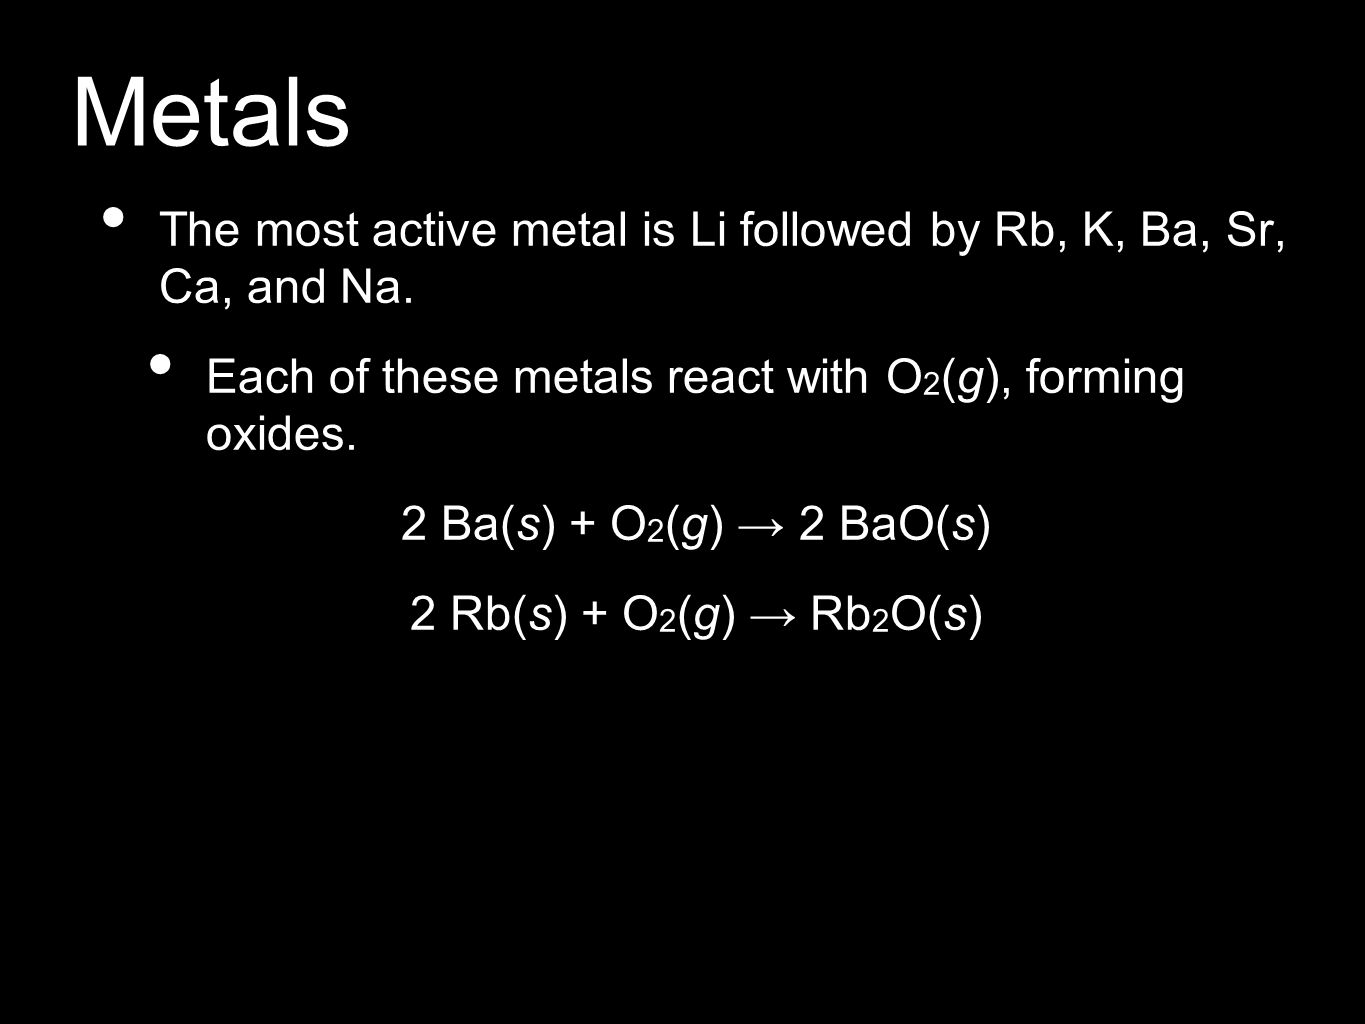 Metals The most active metal is Li followed by Rb, K, Ba, Sr, Ca, and Na. Each of these metals react with O2(g), forming oxides.